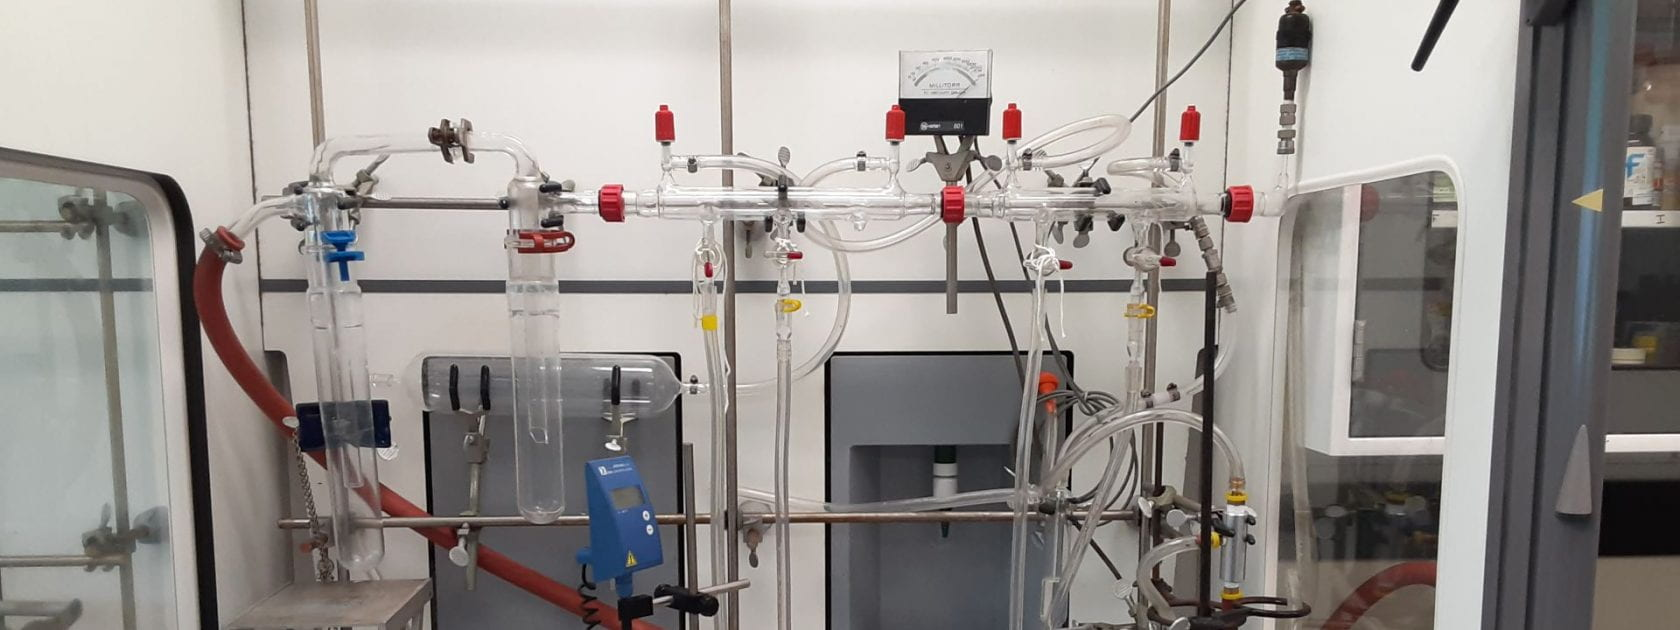 Photo of Schlenk line in a fume hood in the Schlaf lab